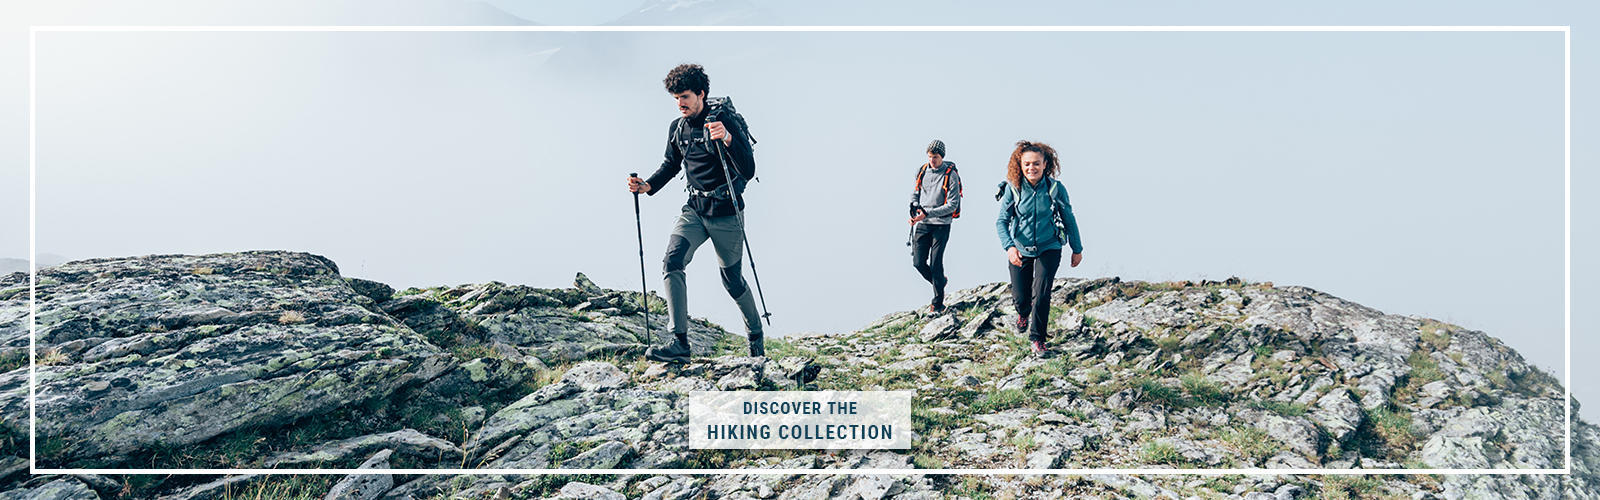 discover the hiking collection mountain hiking quechua decathlon